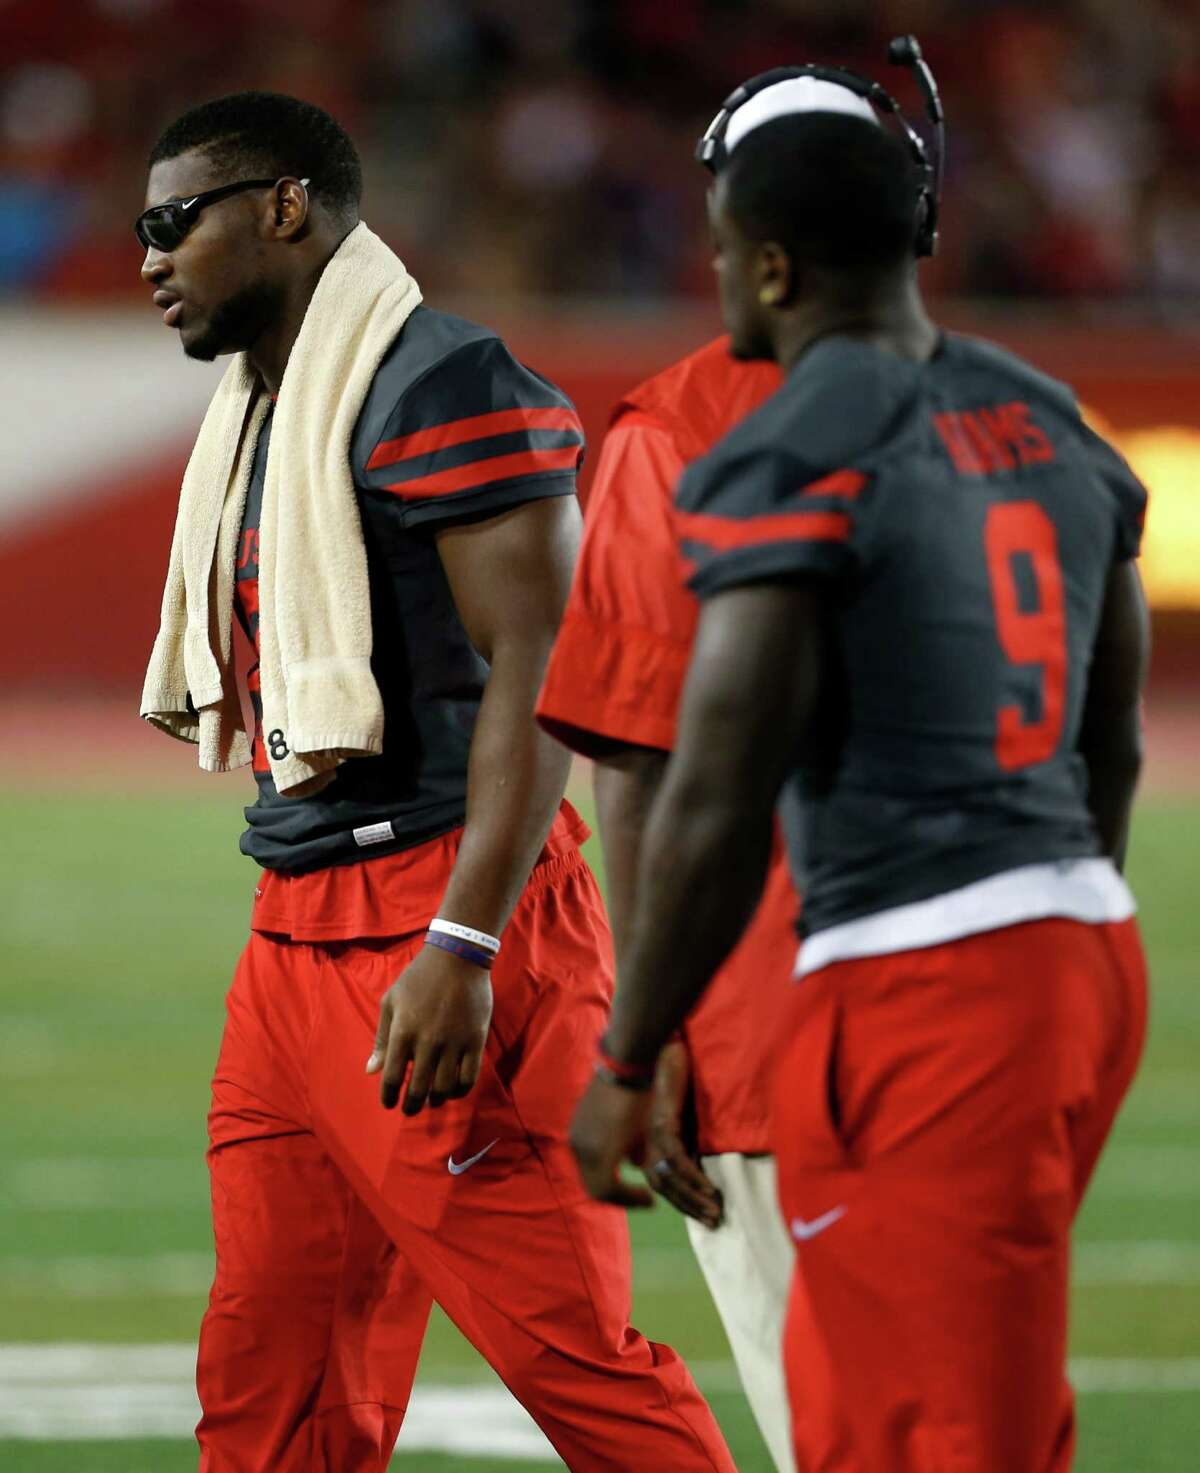 Houston linebacker Tyus Bowser (81) and linebacker Matthew Adams (9) walk off the field following a time out against Connecticut during the first half of an NCAA football game at TDECU Stadium on Thursday, Sept. 29, 2016, in Houston.